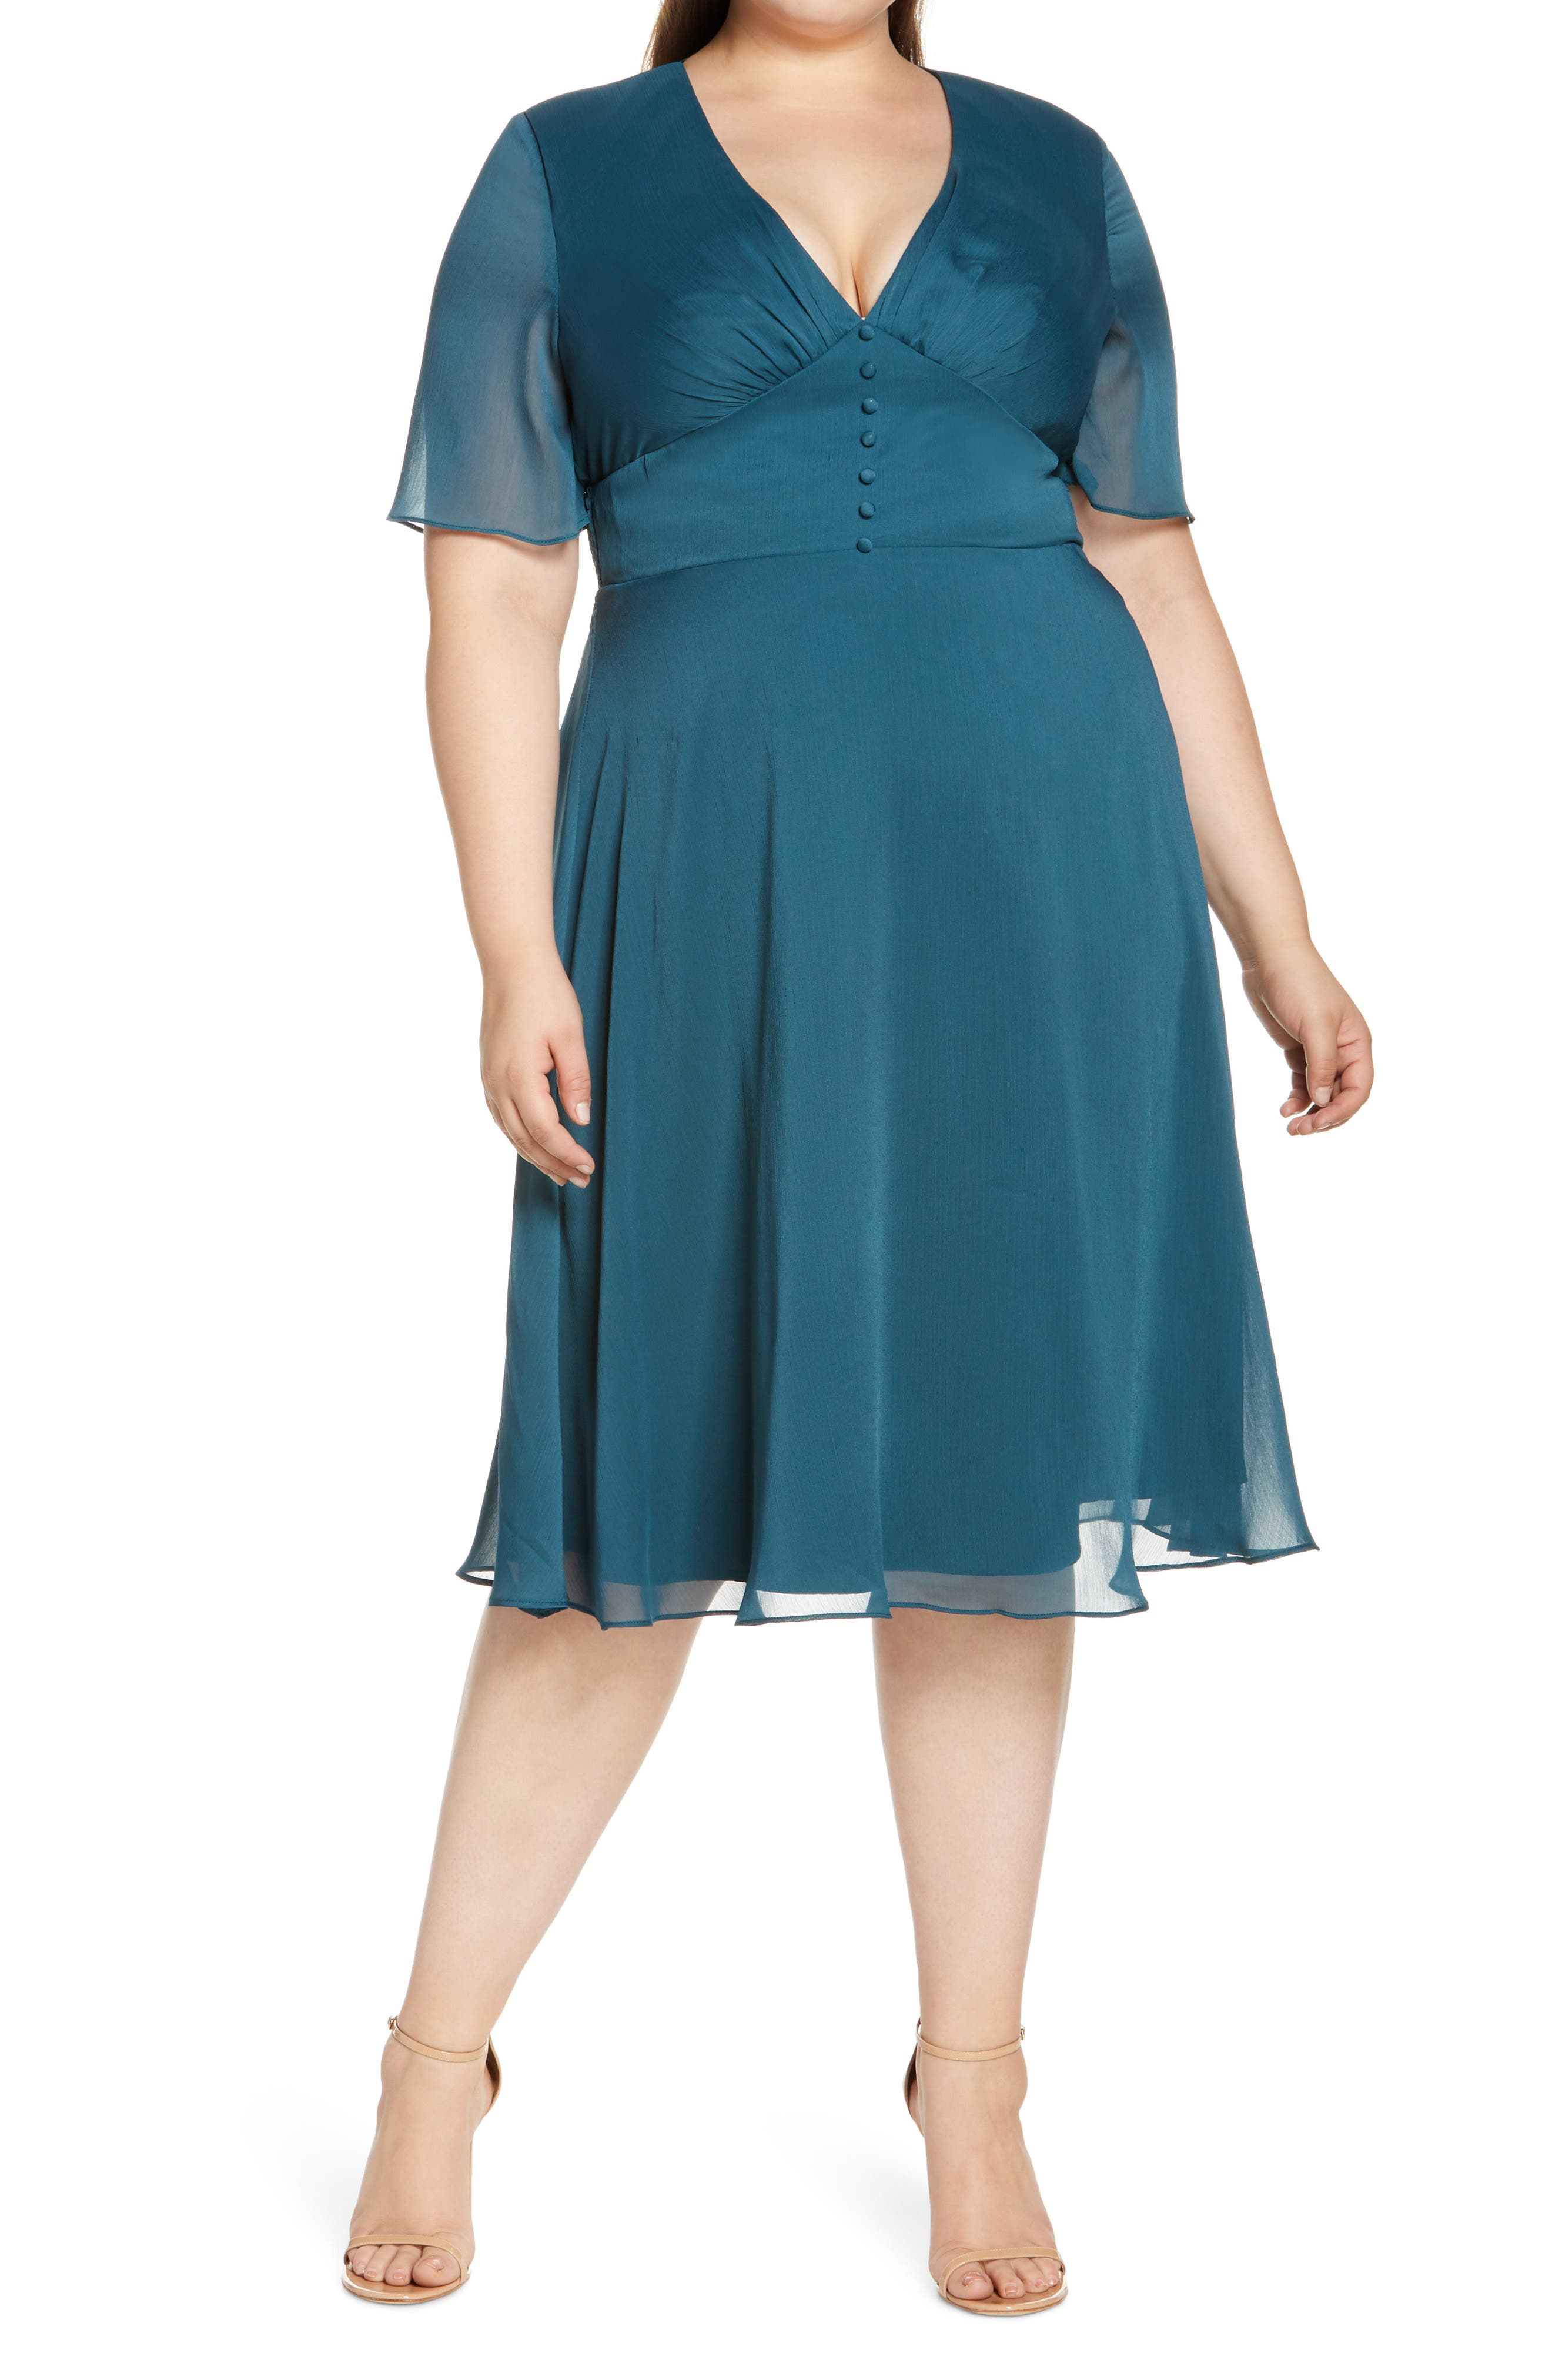 1940s Plus Size Fashion: Style Advice from 1940s to Today Plus Size Womens Chi Chi London Curve Oria Fit  Flare Dress Size 22W - Bluegreen $105.00 AT vintagedancer.com